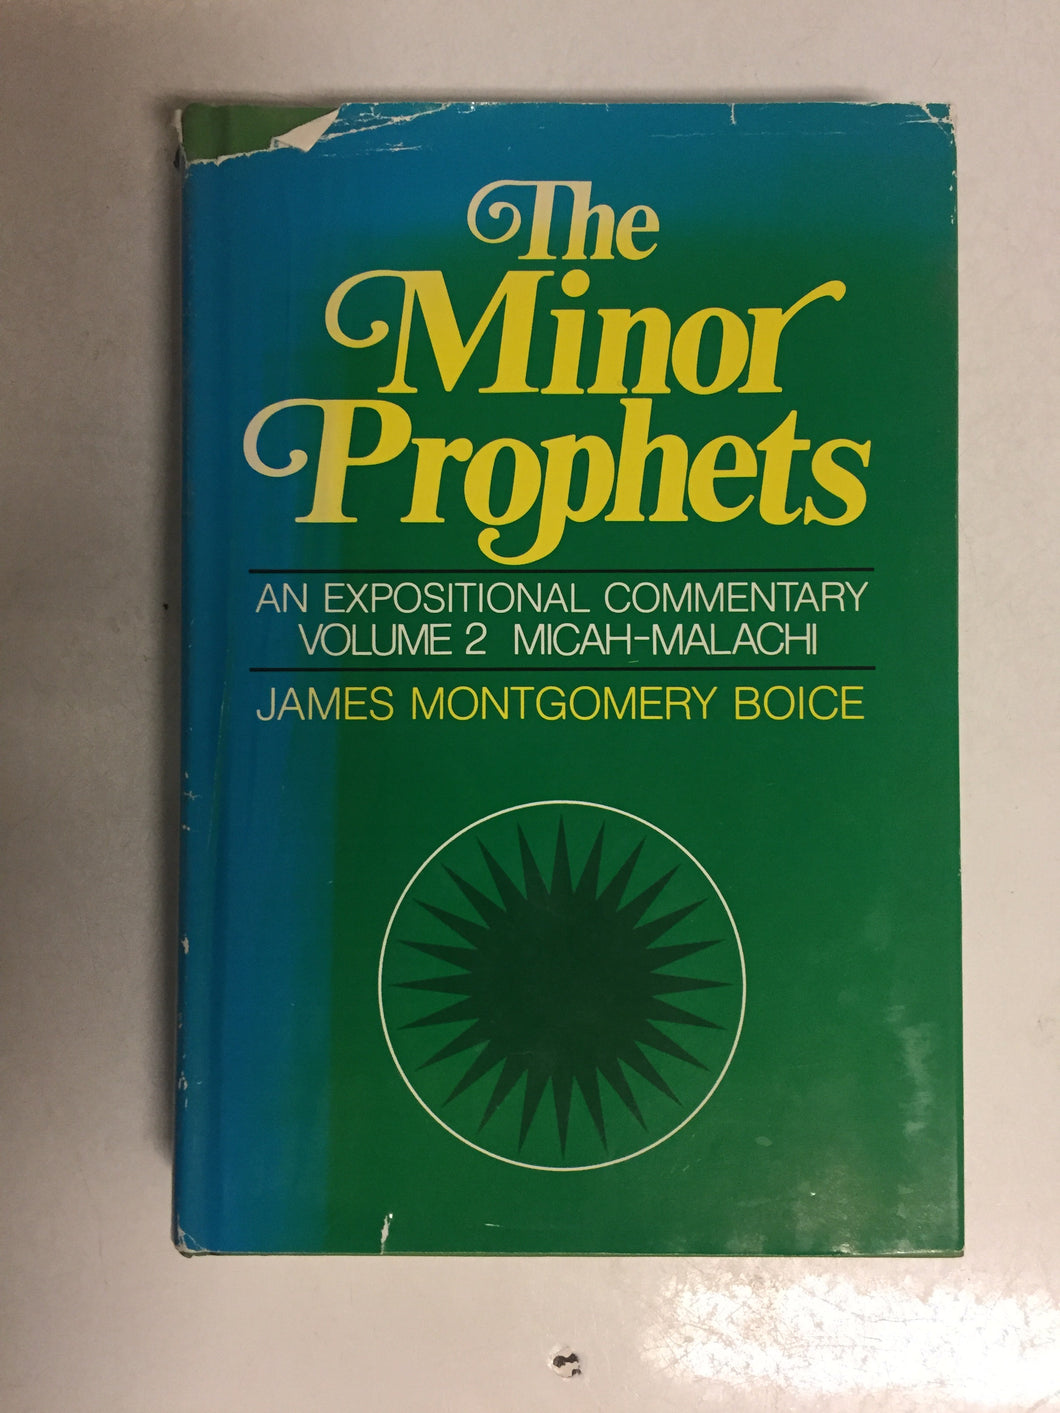 The Minor Prophets An Expositional Commentary Volume 2 Micah-Malachi - Slickcatbooks